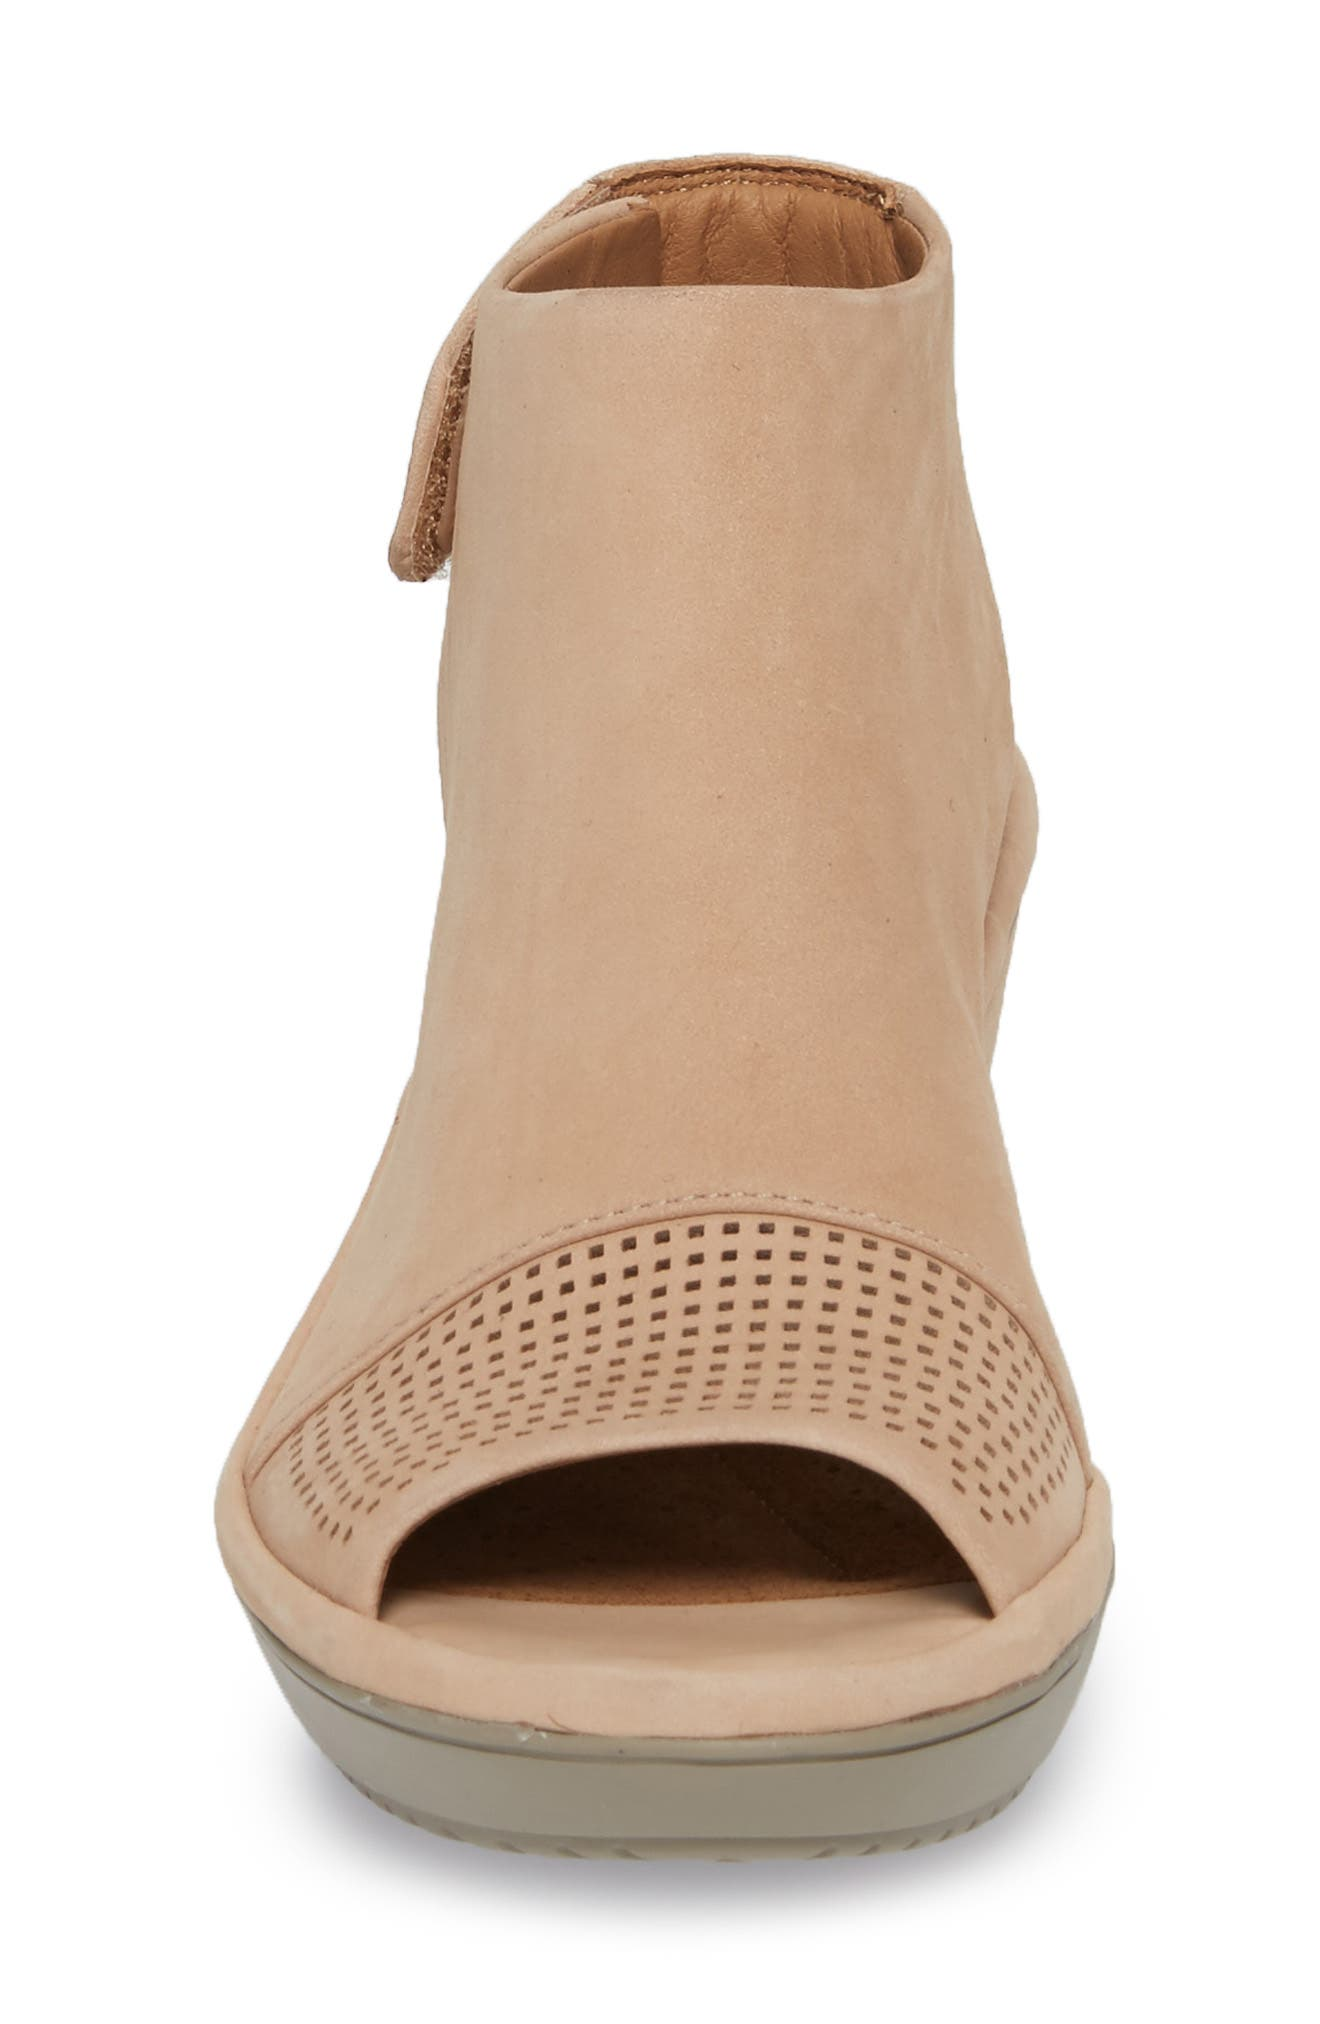 Wynnmere Abie Wedge Sandal,                             Alternate thumbnail 4, color,                             273